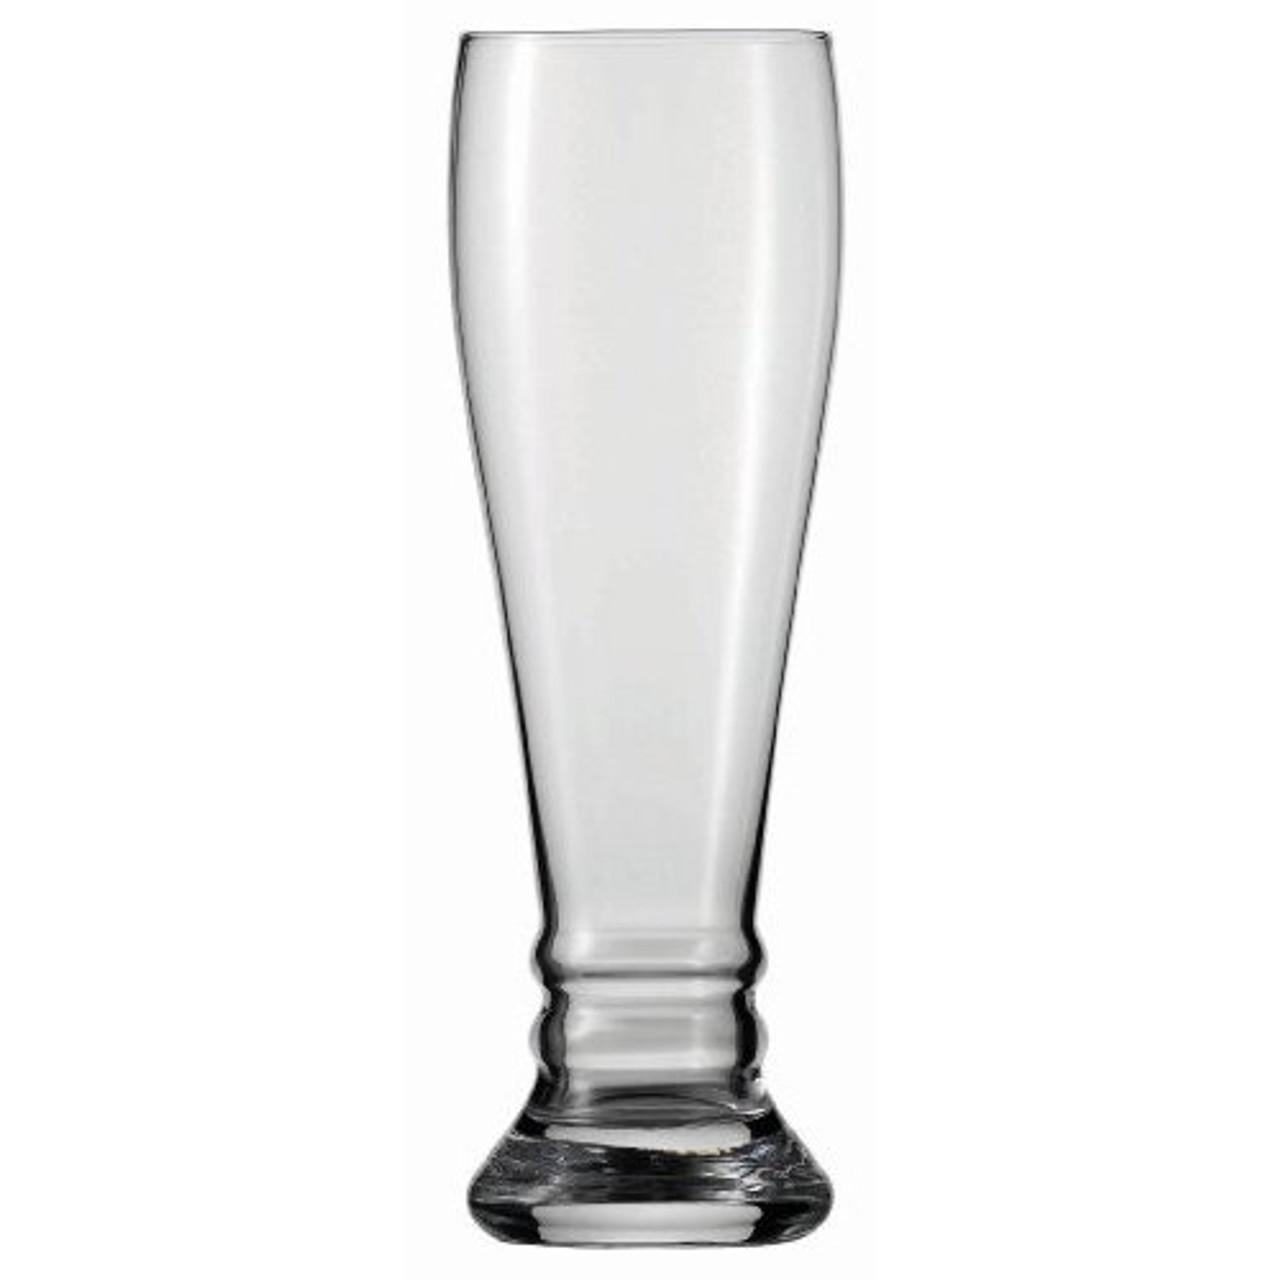 SCHOTT ZWIESEL TRITAN BAVARIA BEER GLASS